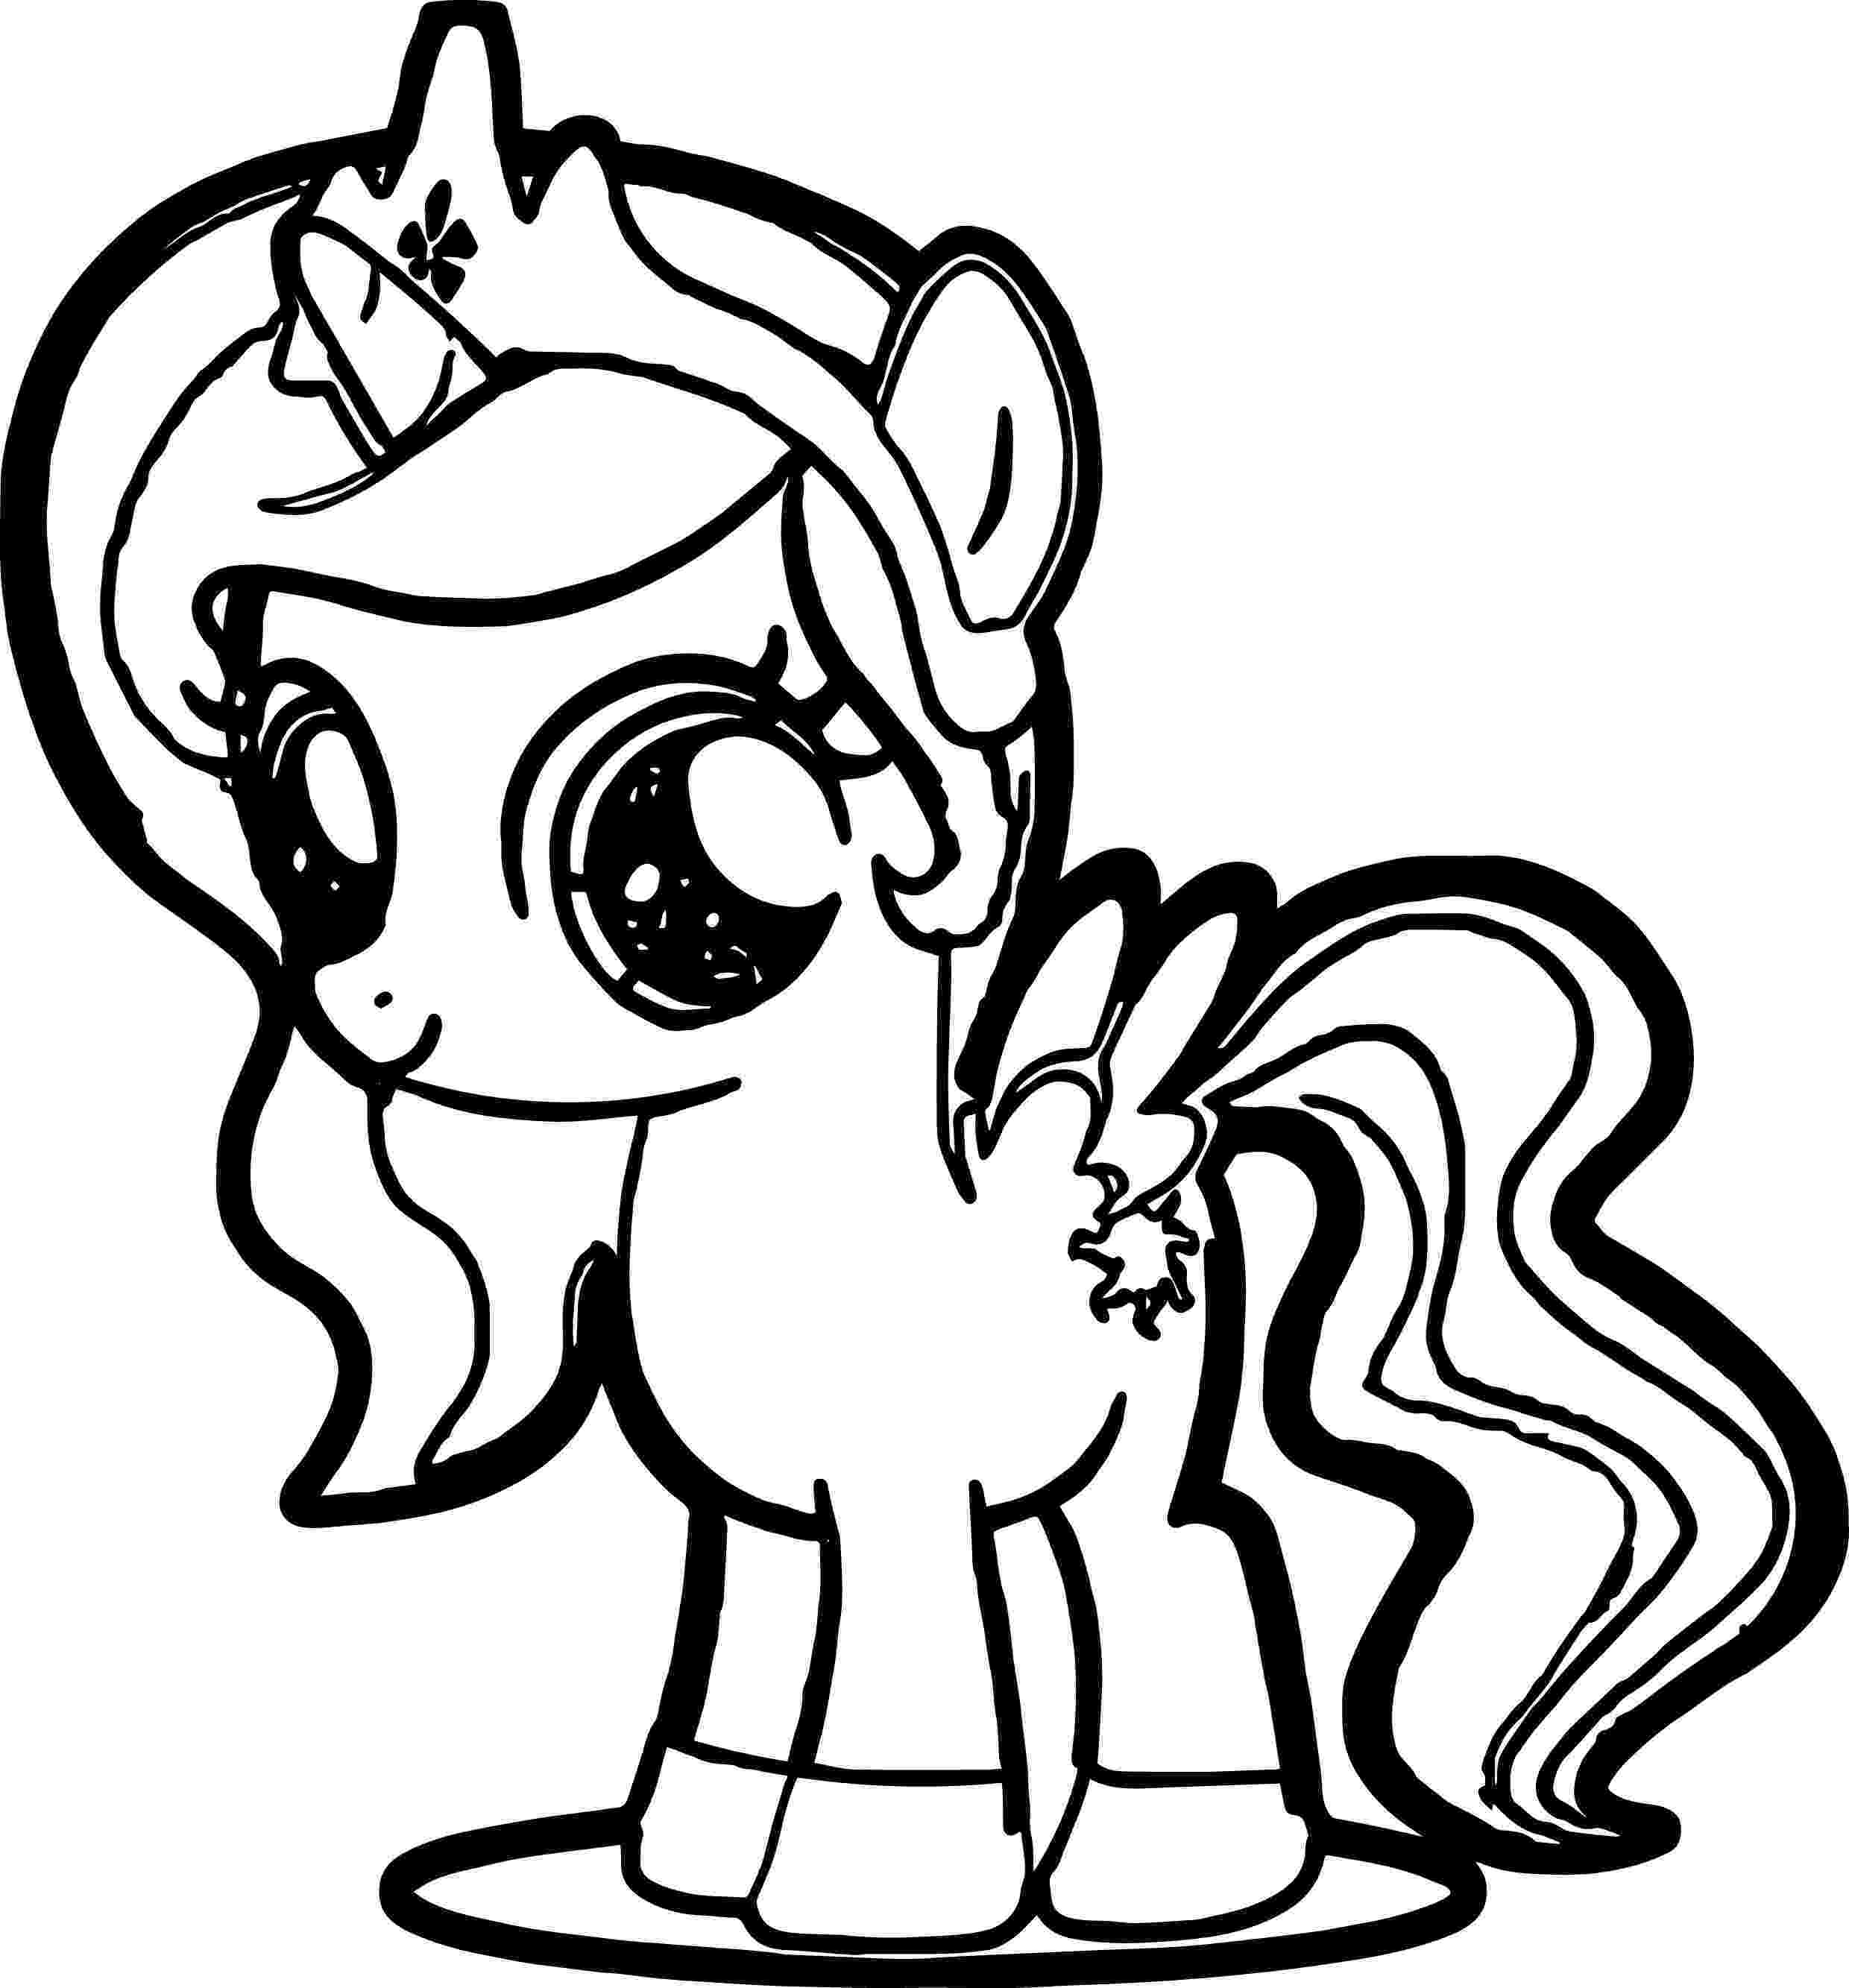 my little pony pictures to colour ponies from ponyville coloring pages free printable pony my colour to little pictures